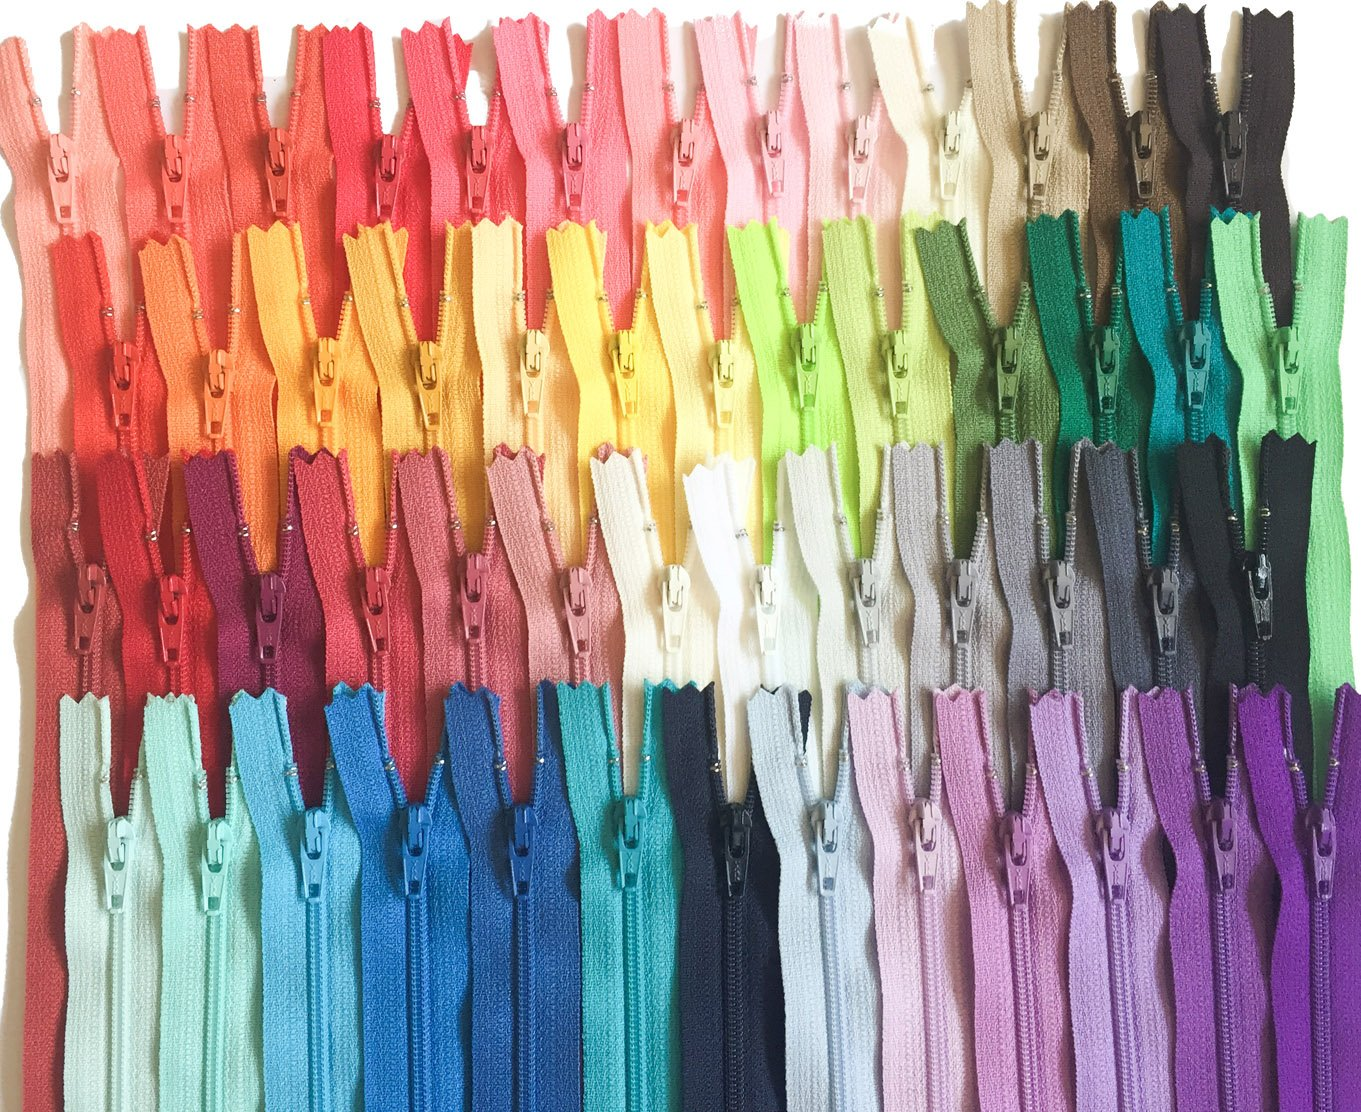 YKK Zippers Assorted Colors Pack 12 Inch Number 3 Nylon Coil Set of 110 Pieces by YKK